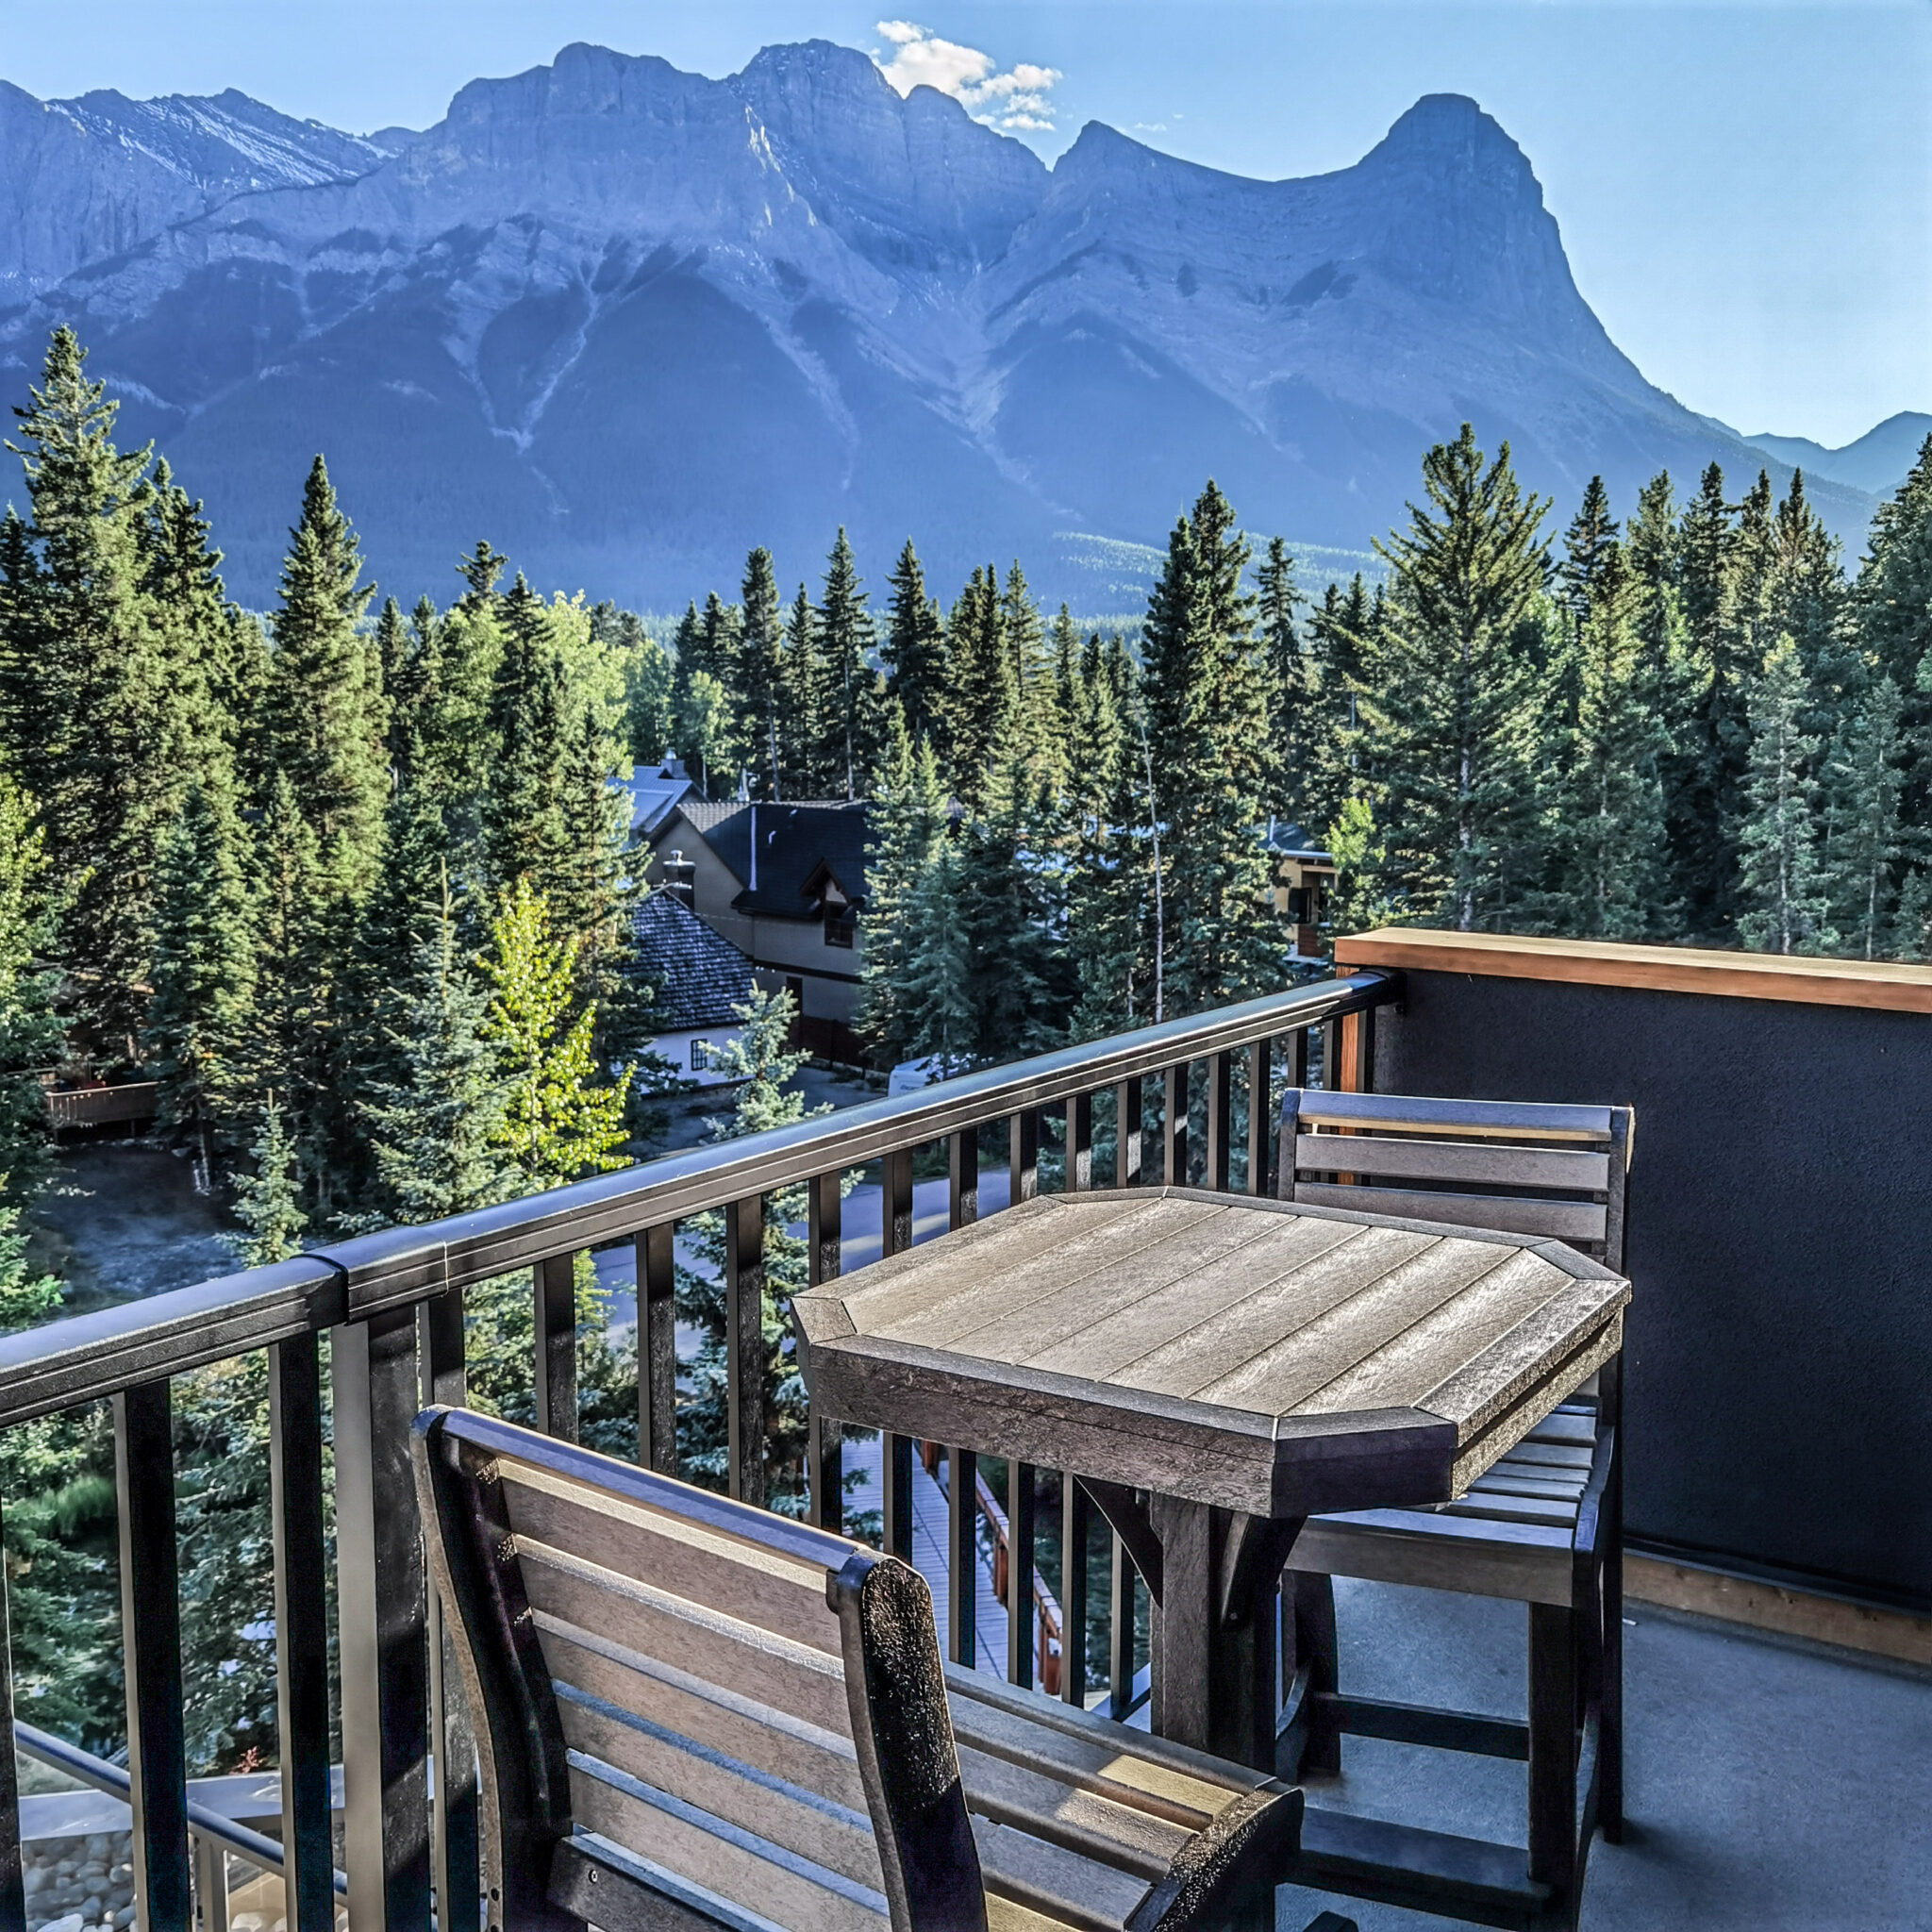 Hotel Malcolm Canmore Alberta - Canadian Rockies - Room Balcony